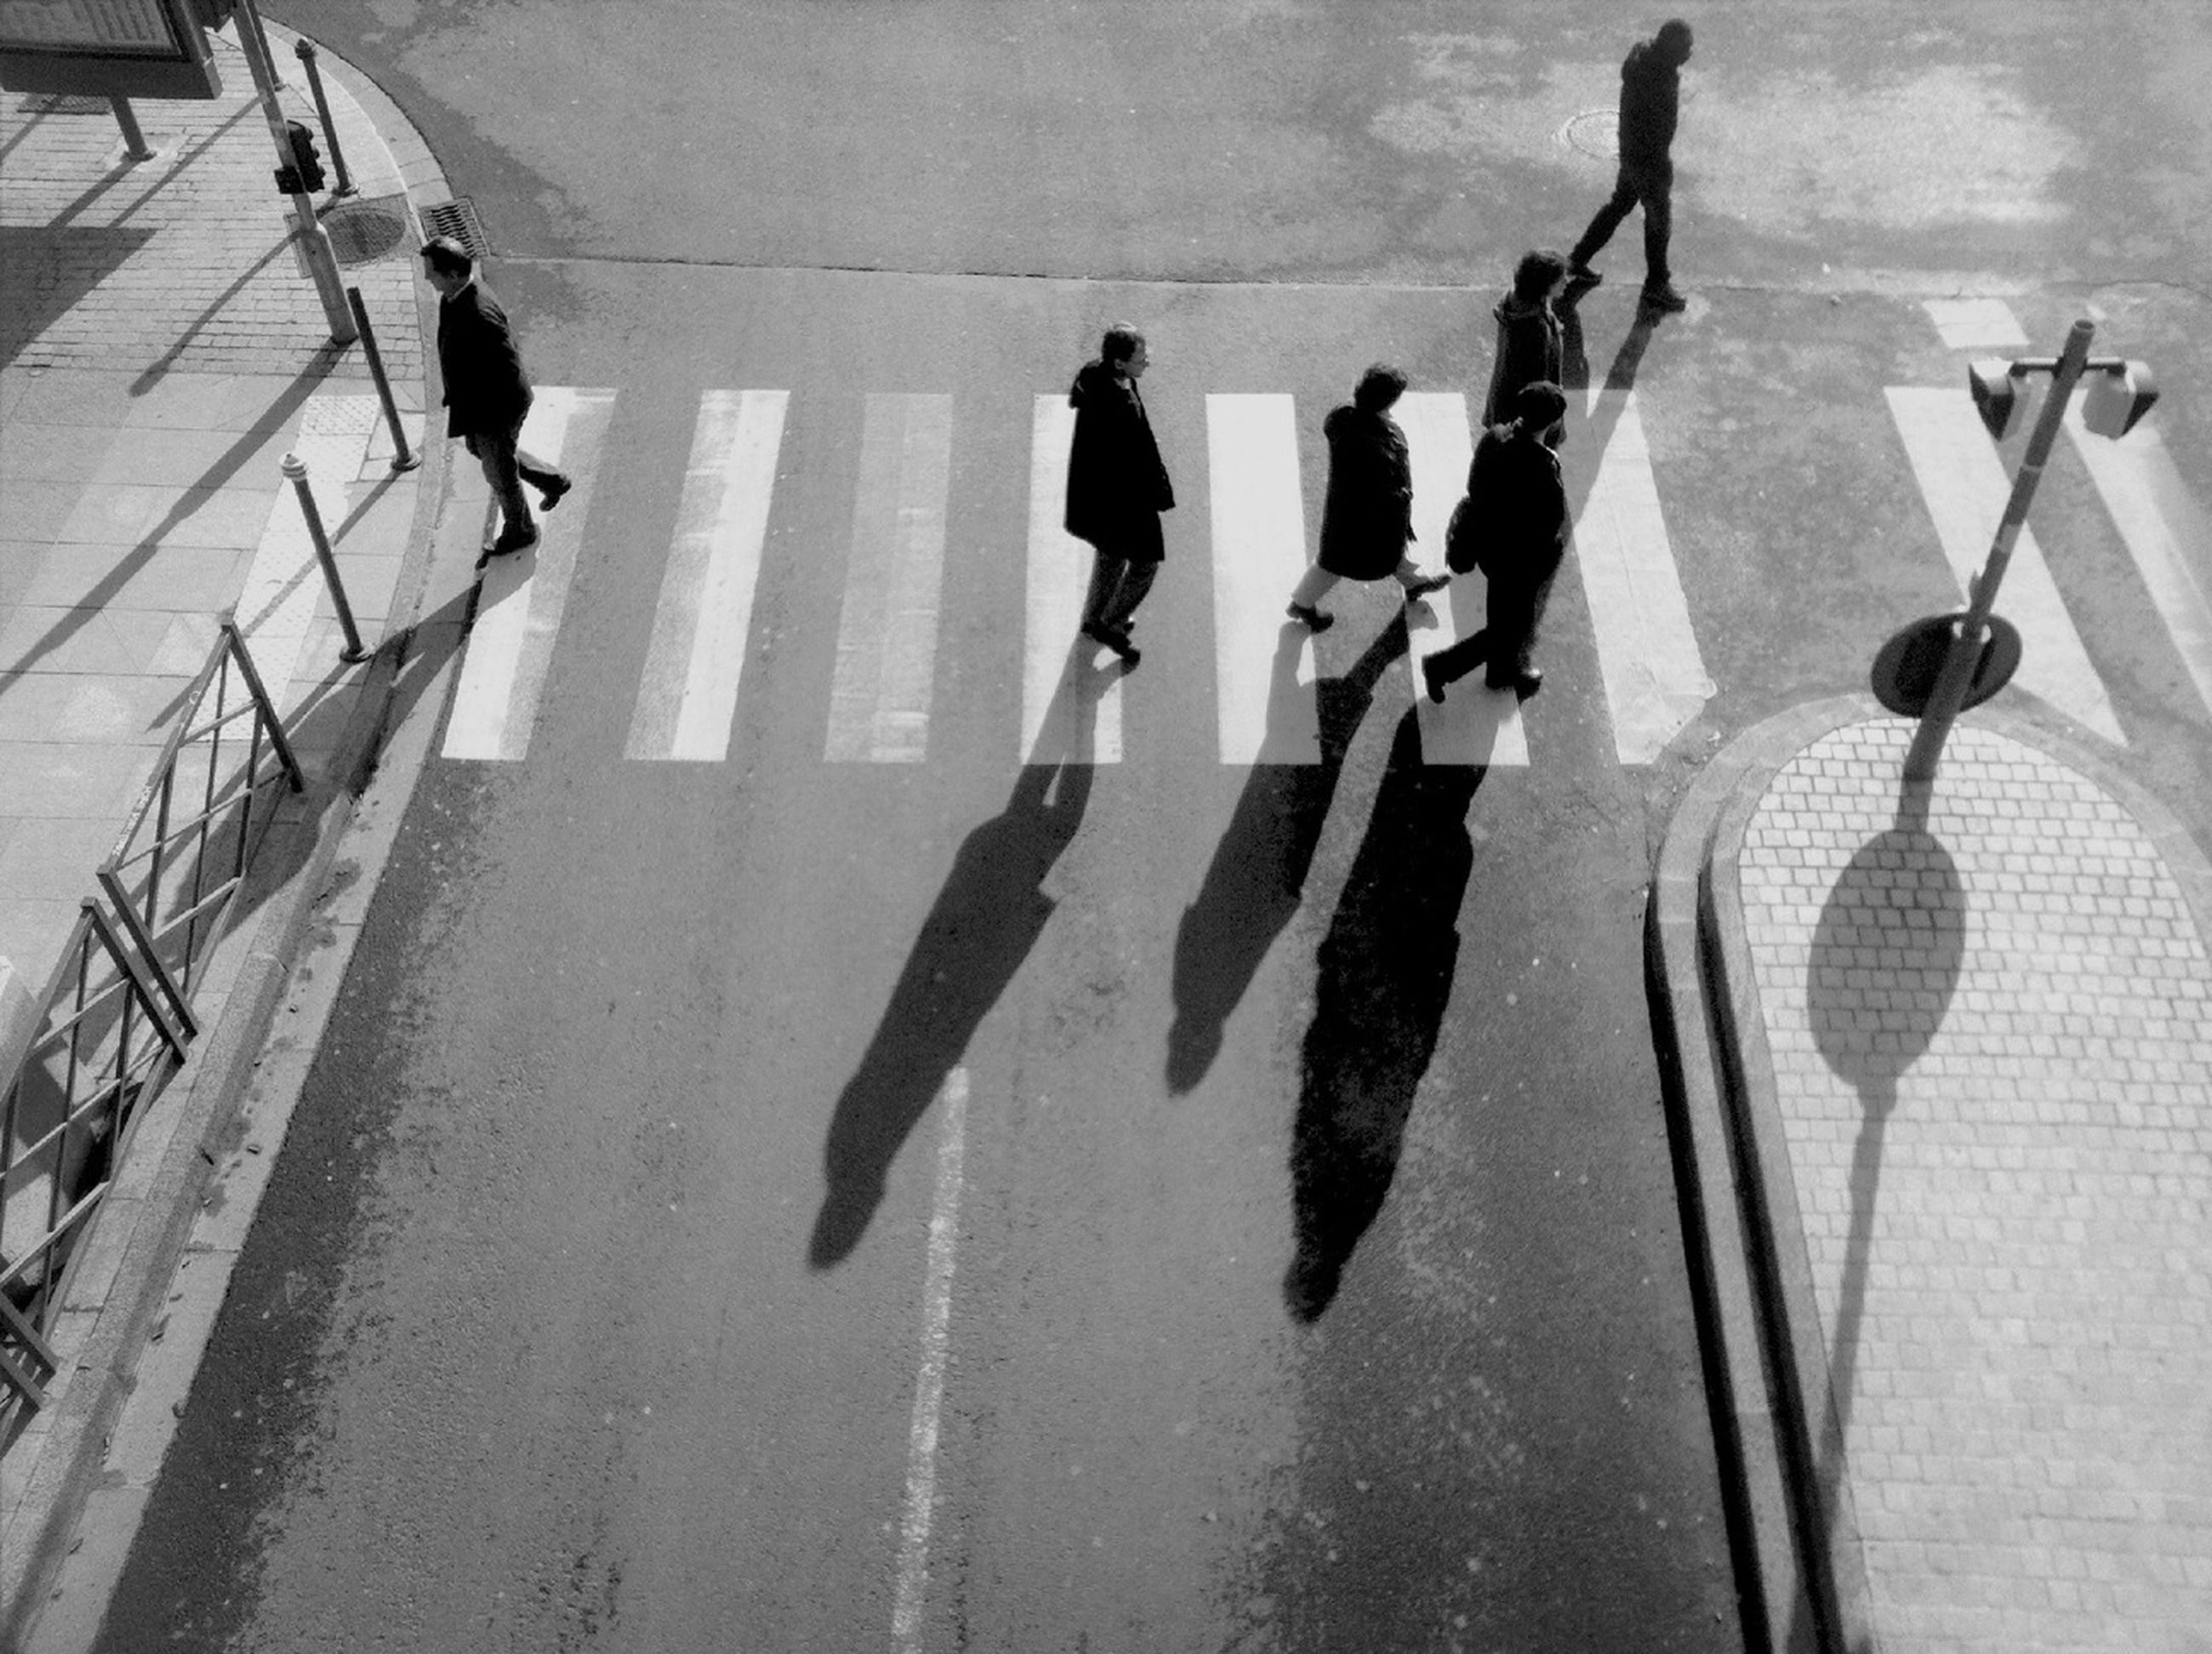 men, person, walking, lifestyles, high angle view, large group of people, shadow, street, city life, leisure activity, medium group of people, architecture, built structure, transportation, indoors, day, sunlight, city, in a row